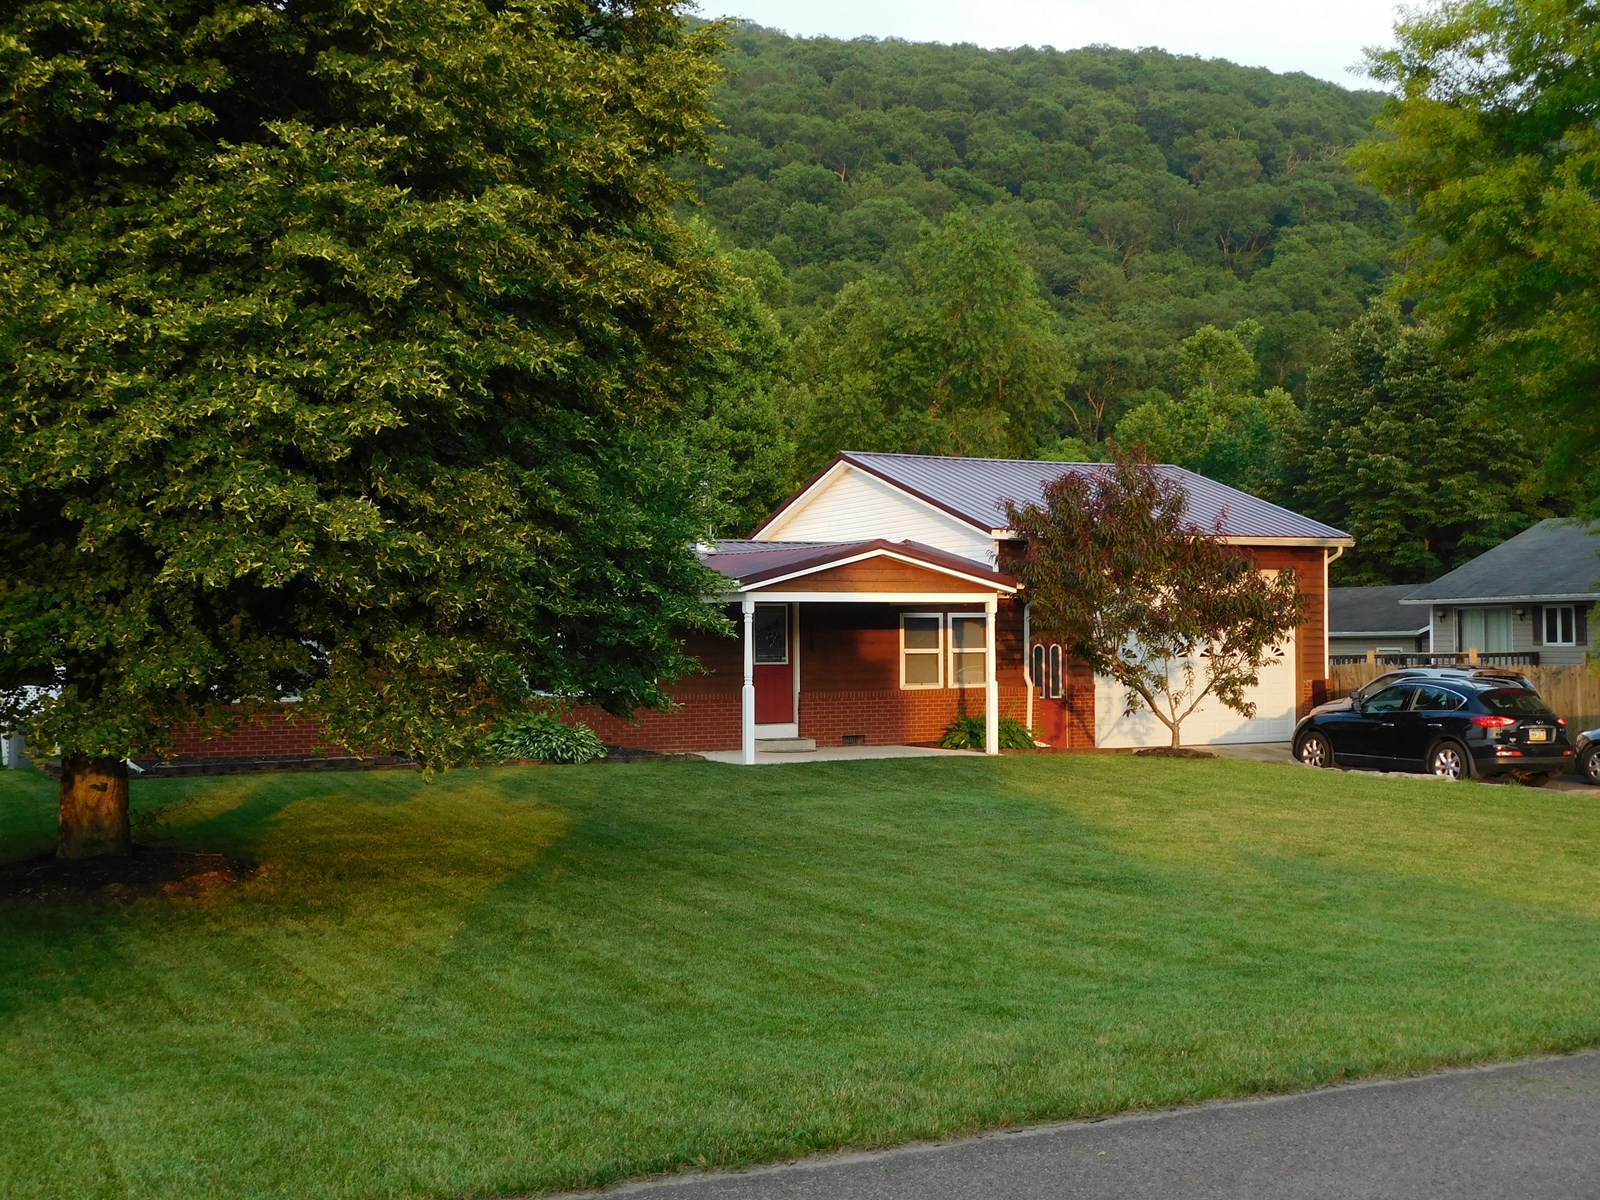 Home for Sale in Hyndman PA